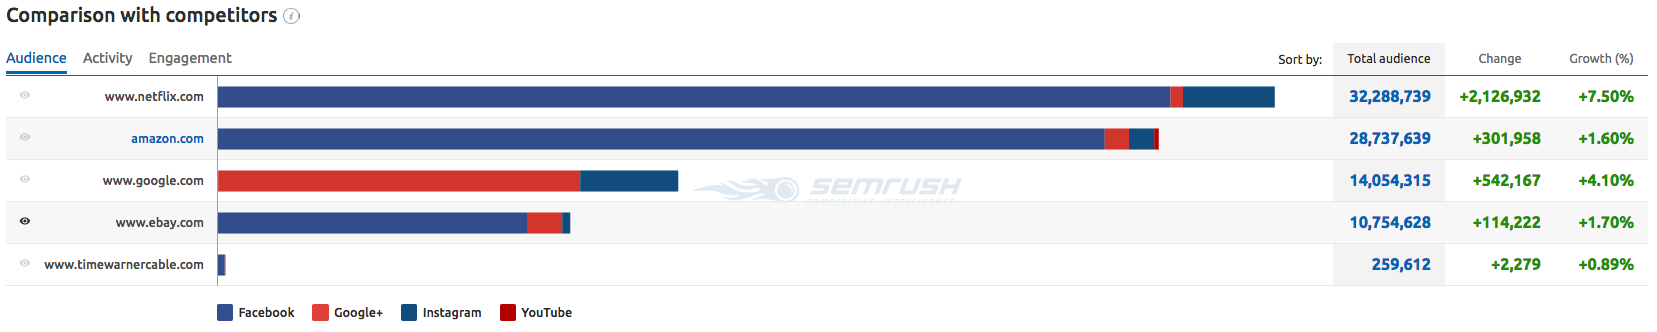 SEMrush: The Social Media Tool Brings Out the Best Content! image 3